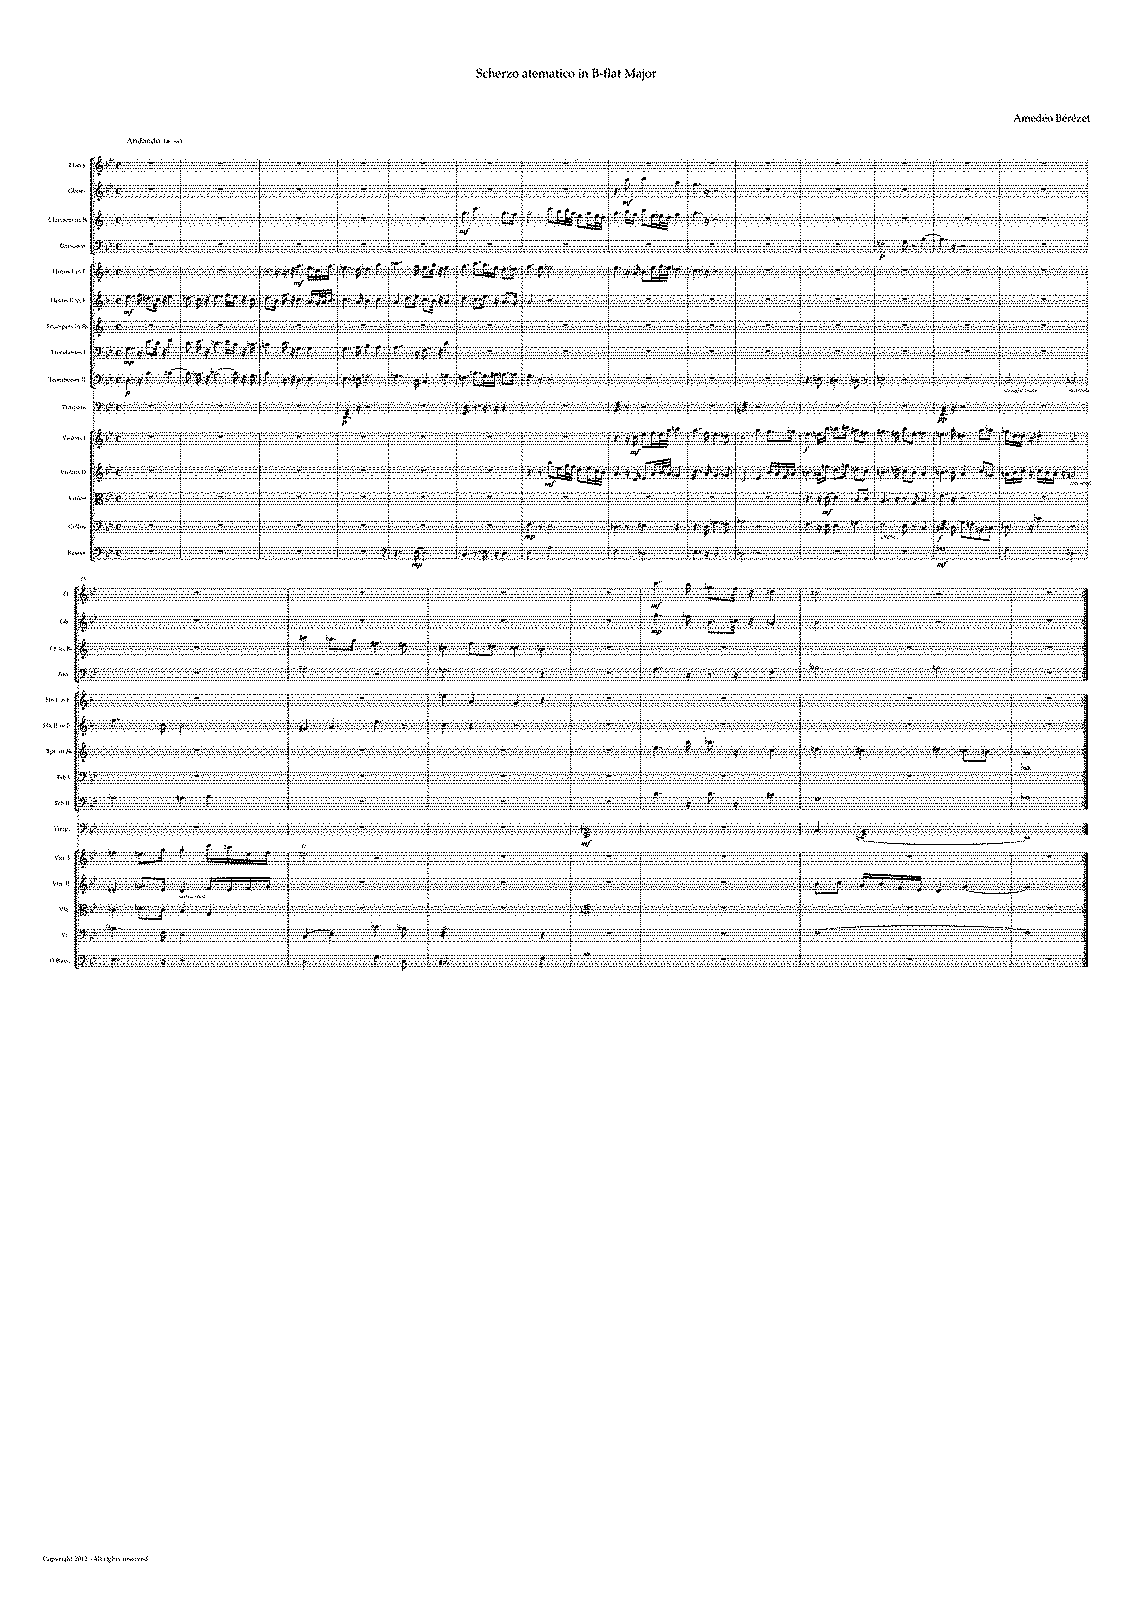 PMLP408094-Scherzo atematico in B-flat Major by Amedéo Bérézet.pdf